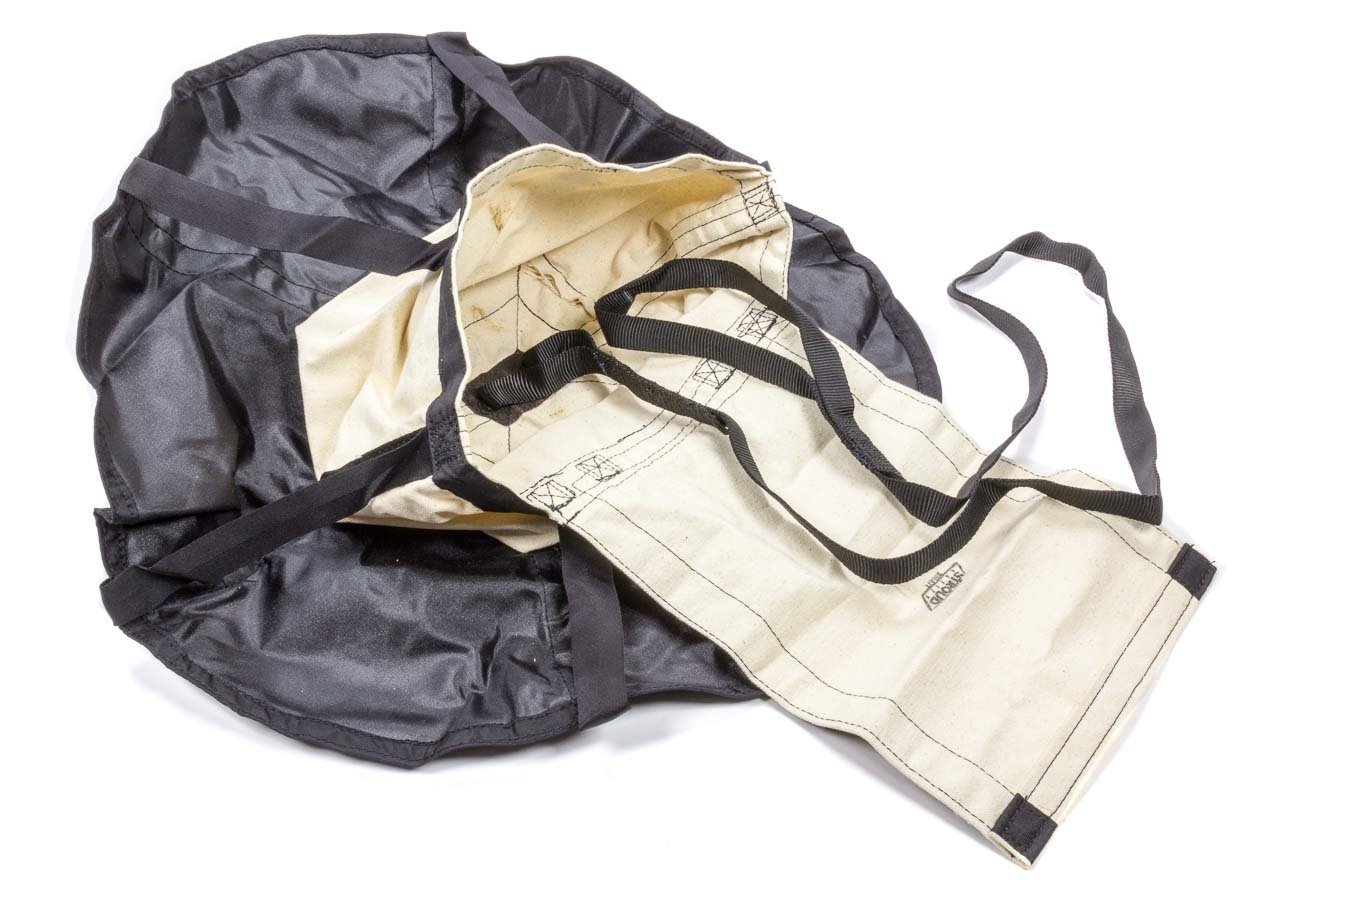 Stroud Safety Launcher Bag Small 410 Series Chutes